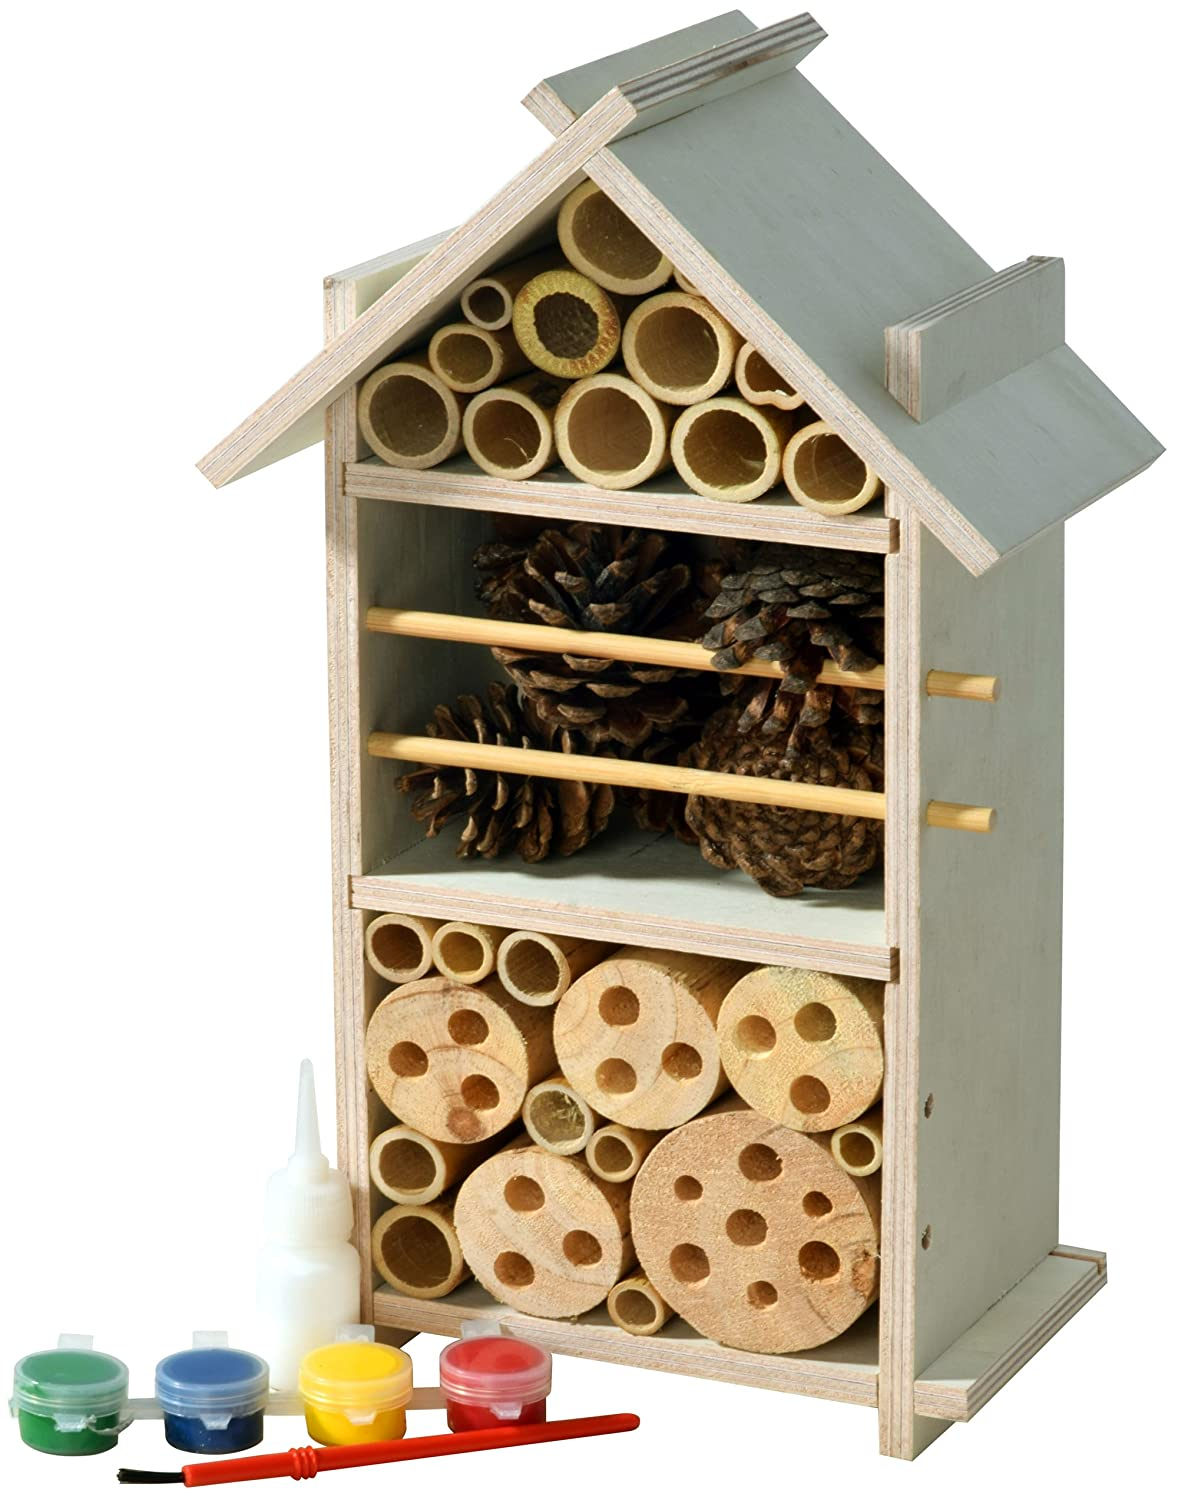 Luxus-Insektenhotels 22369FSC FSC-Wood Insect hotel set for children to build and paint